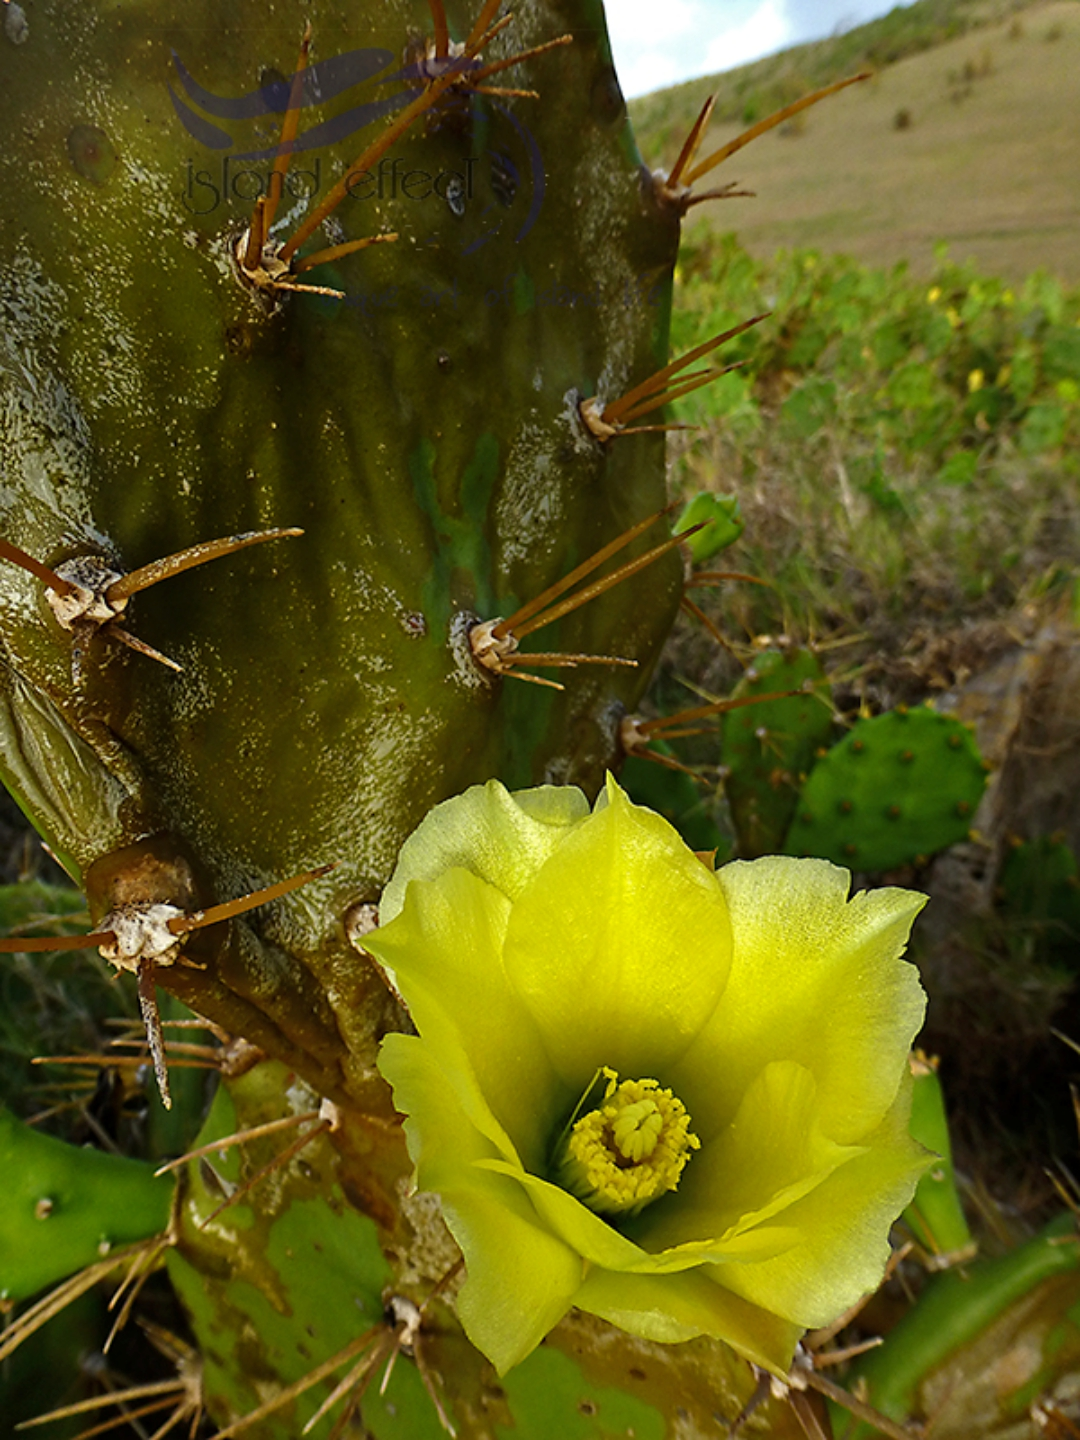 Opuntia nopales tunas prickly pear cactus edible wildplants